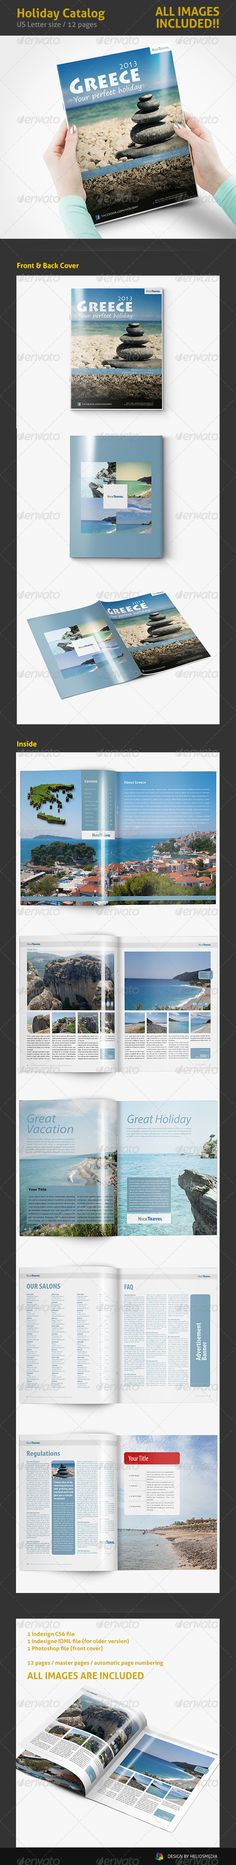 Travel Holiday Catalog  PSD Template • Download ➝ https://graphicriver.net/item/travel-holiday-catalog/4271735?ref=pxcr